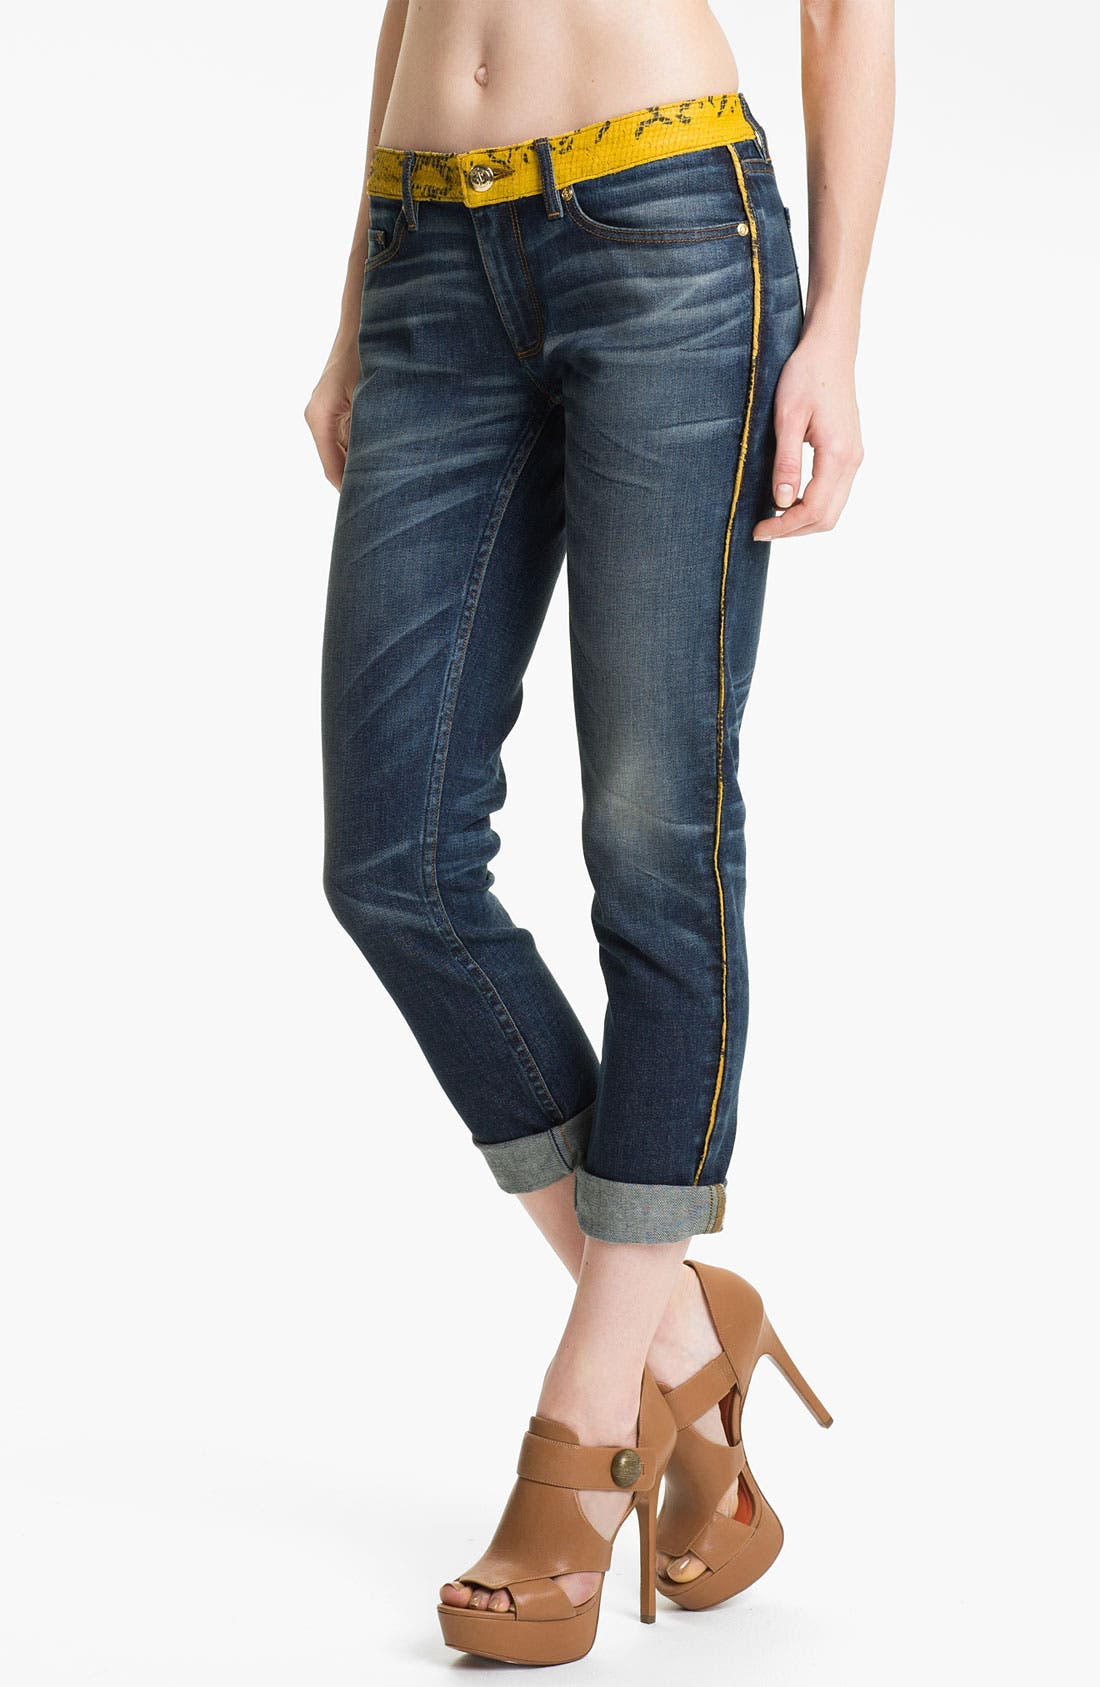 Alternate Image 1 Selected - Juicy Couture 'Slouchy Skinny' Leather Trim Jeans (Bleeker)